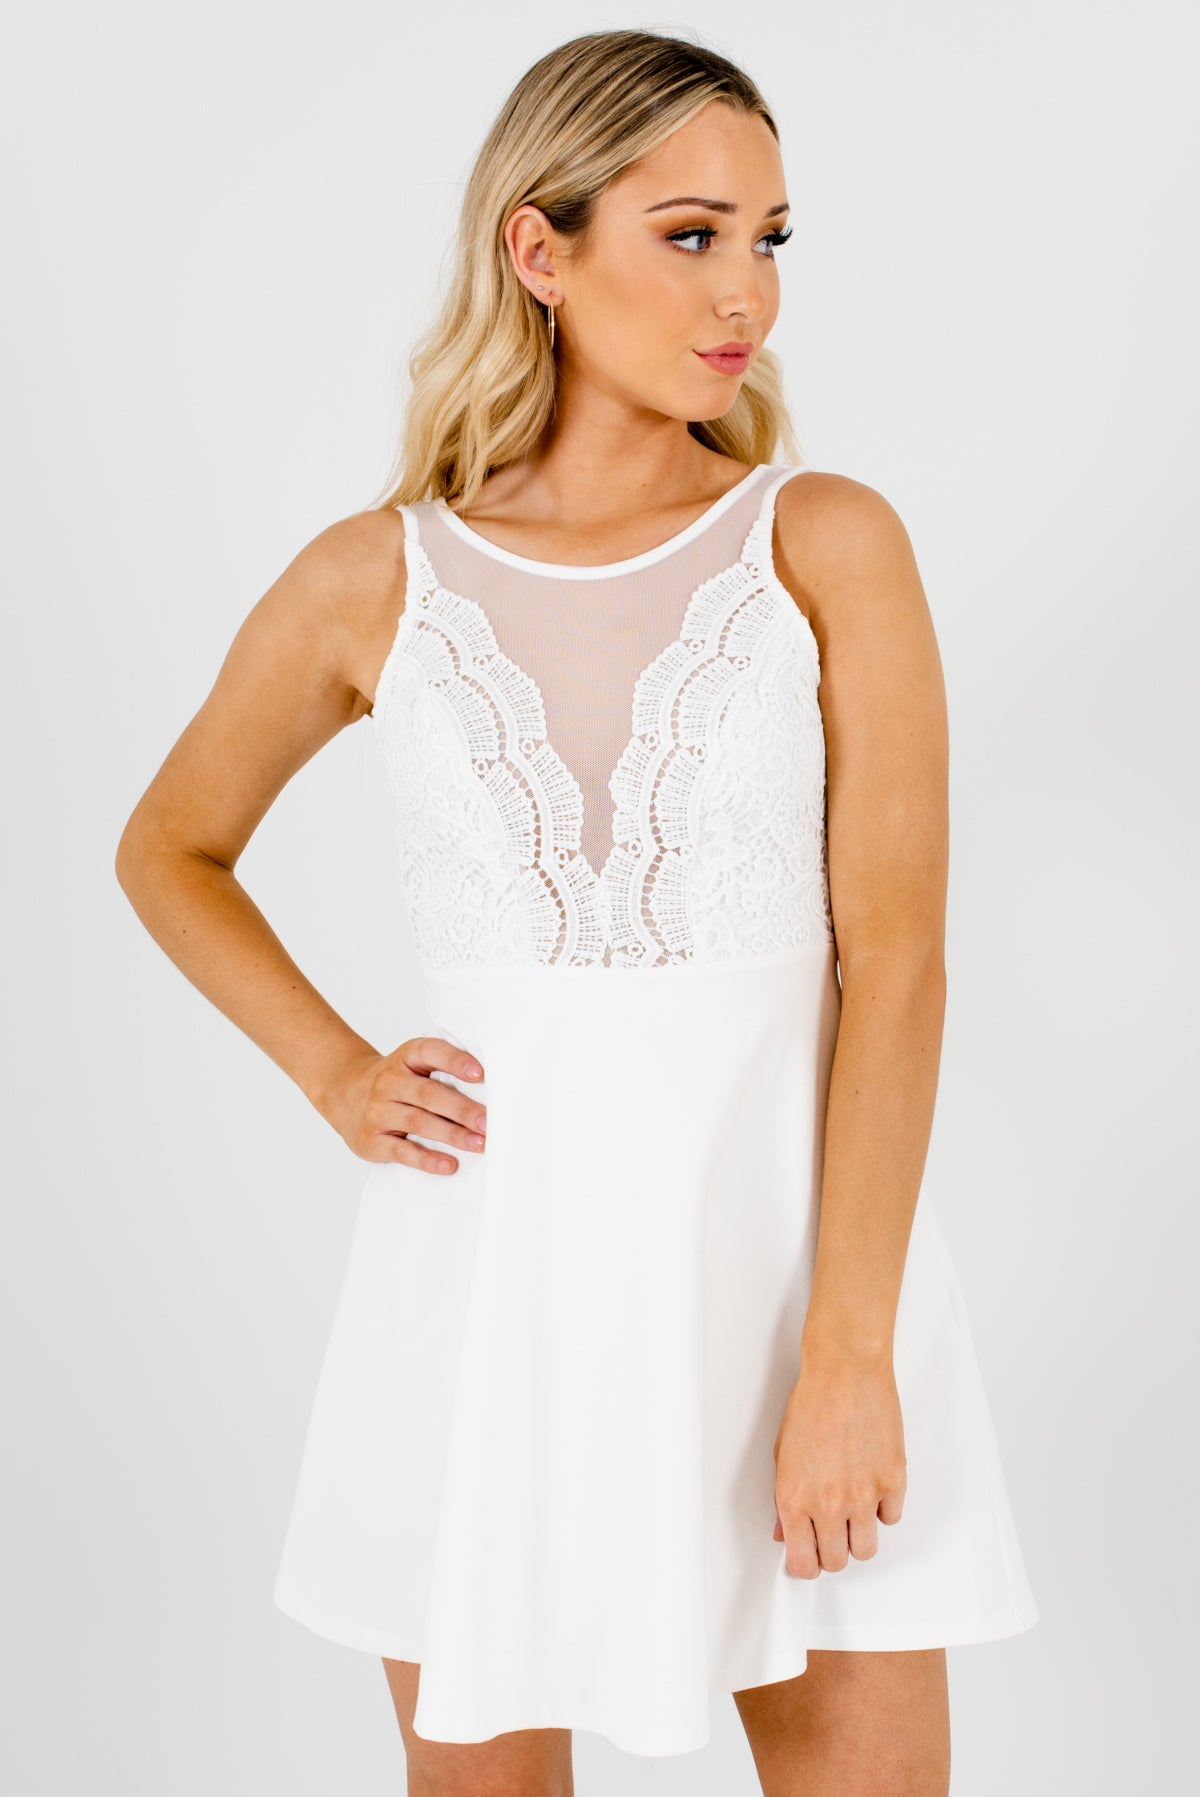 White Mesh Neckline Detailed Boutique Mini Dresses for Women